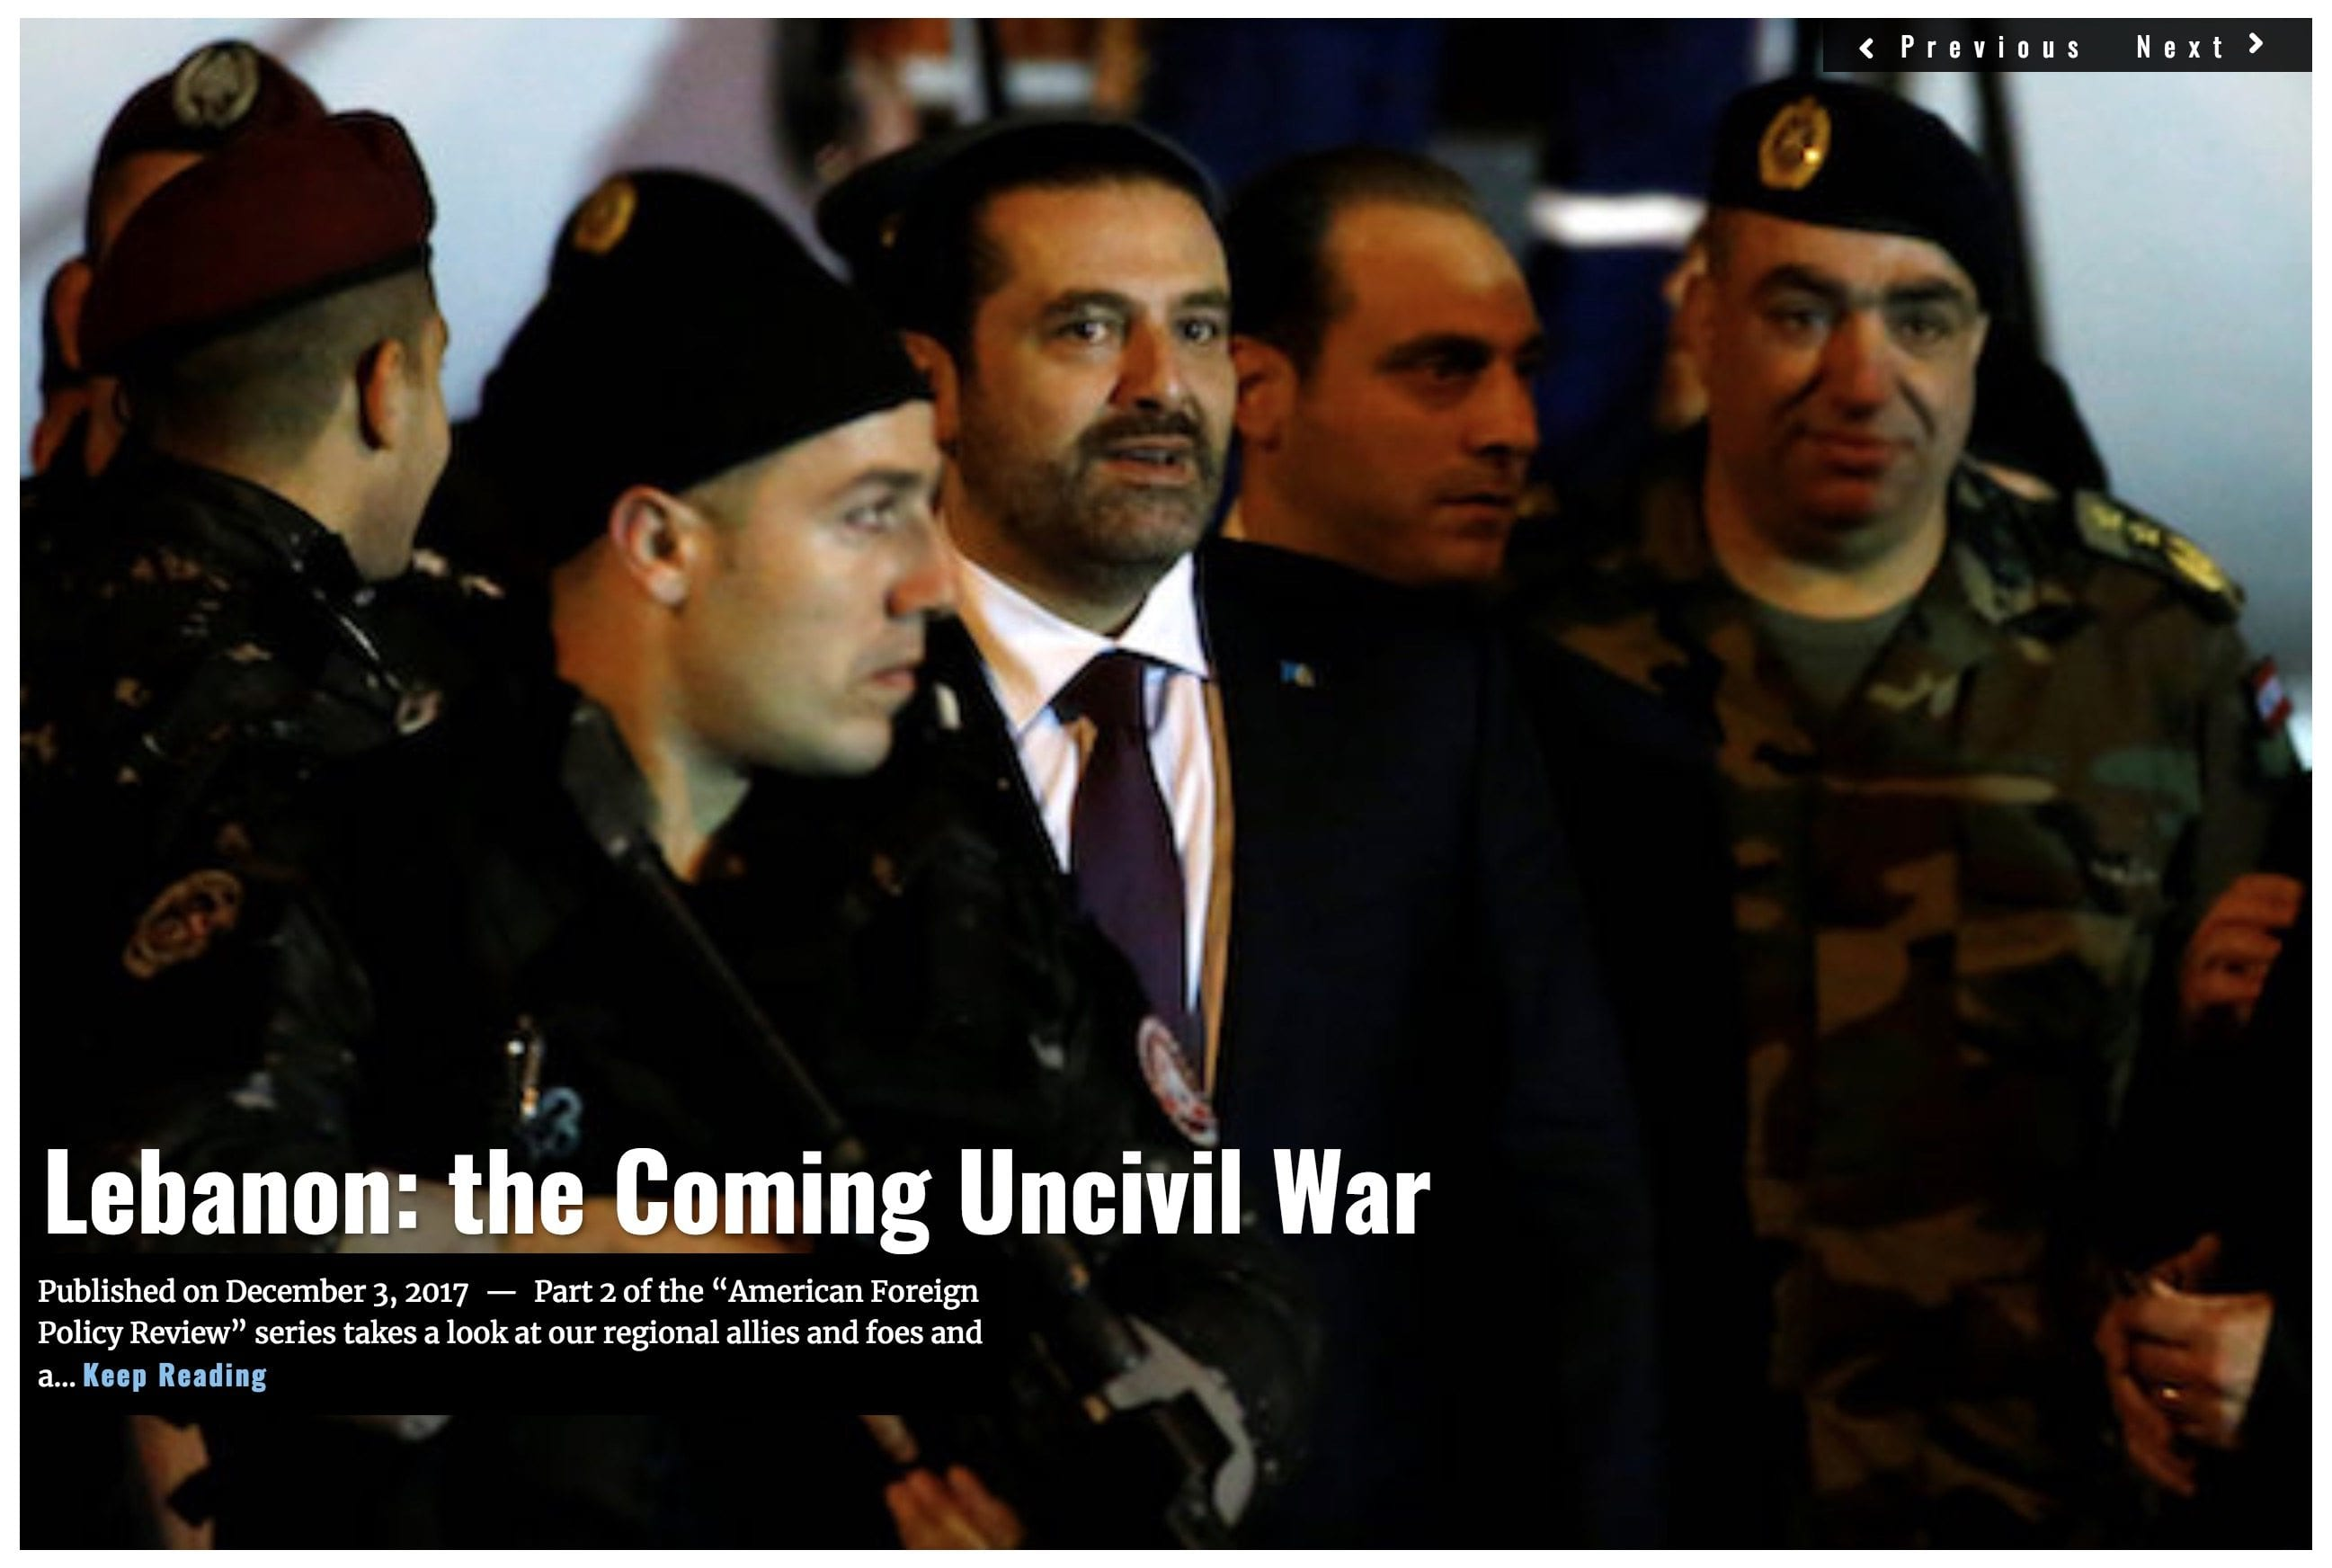 Image Lima Charlie News Headline Lebanon Civil War DEC3 J.Sjoholm